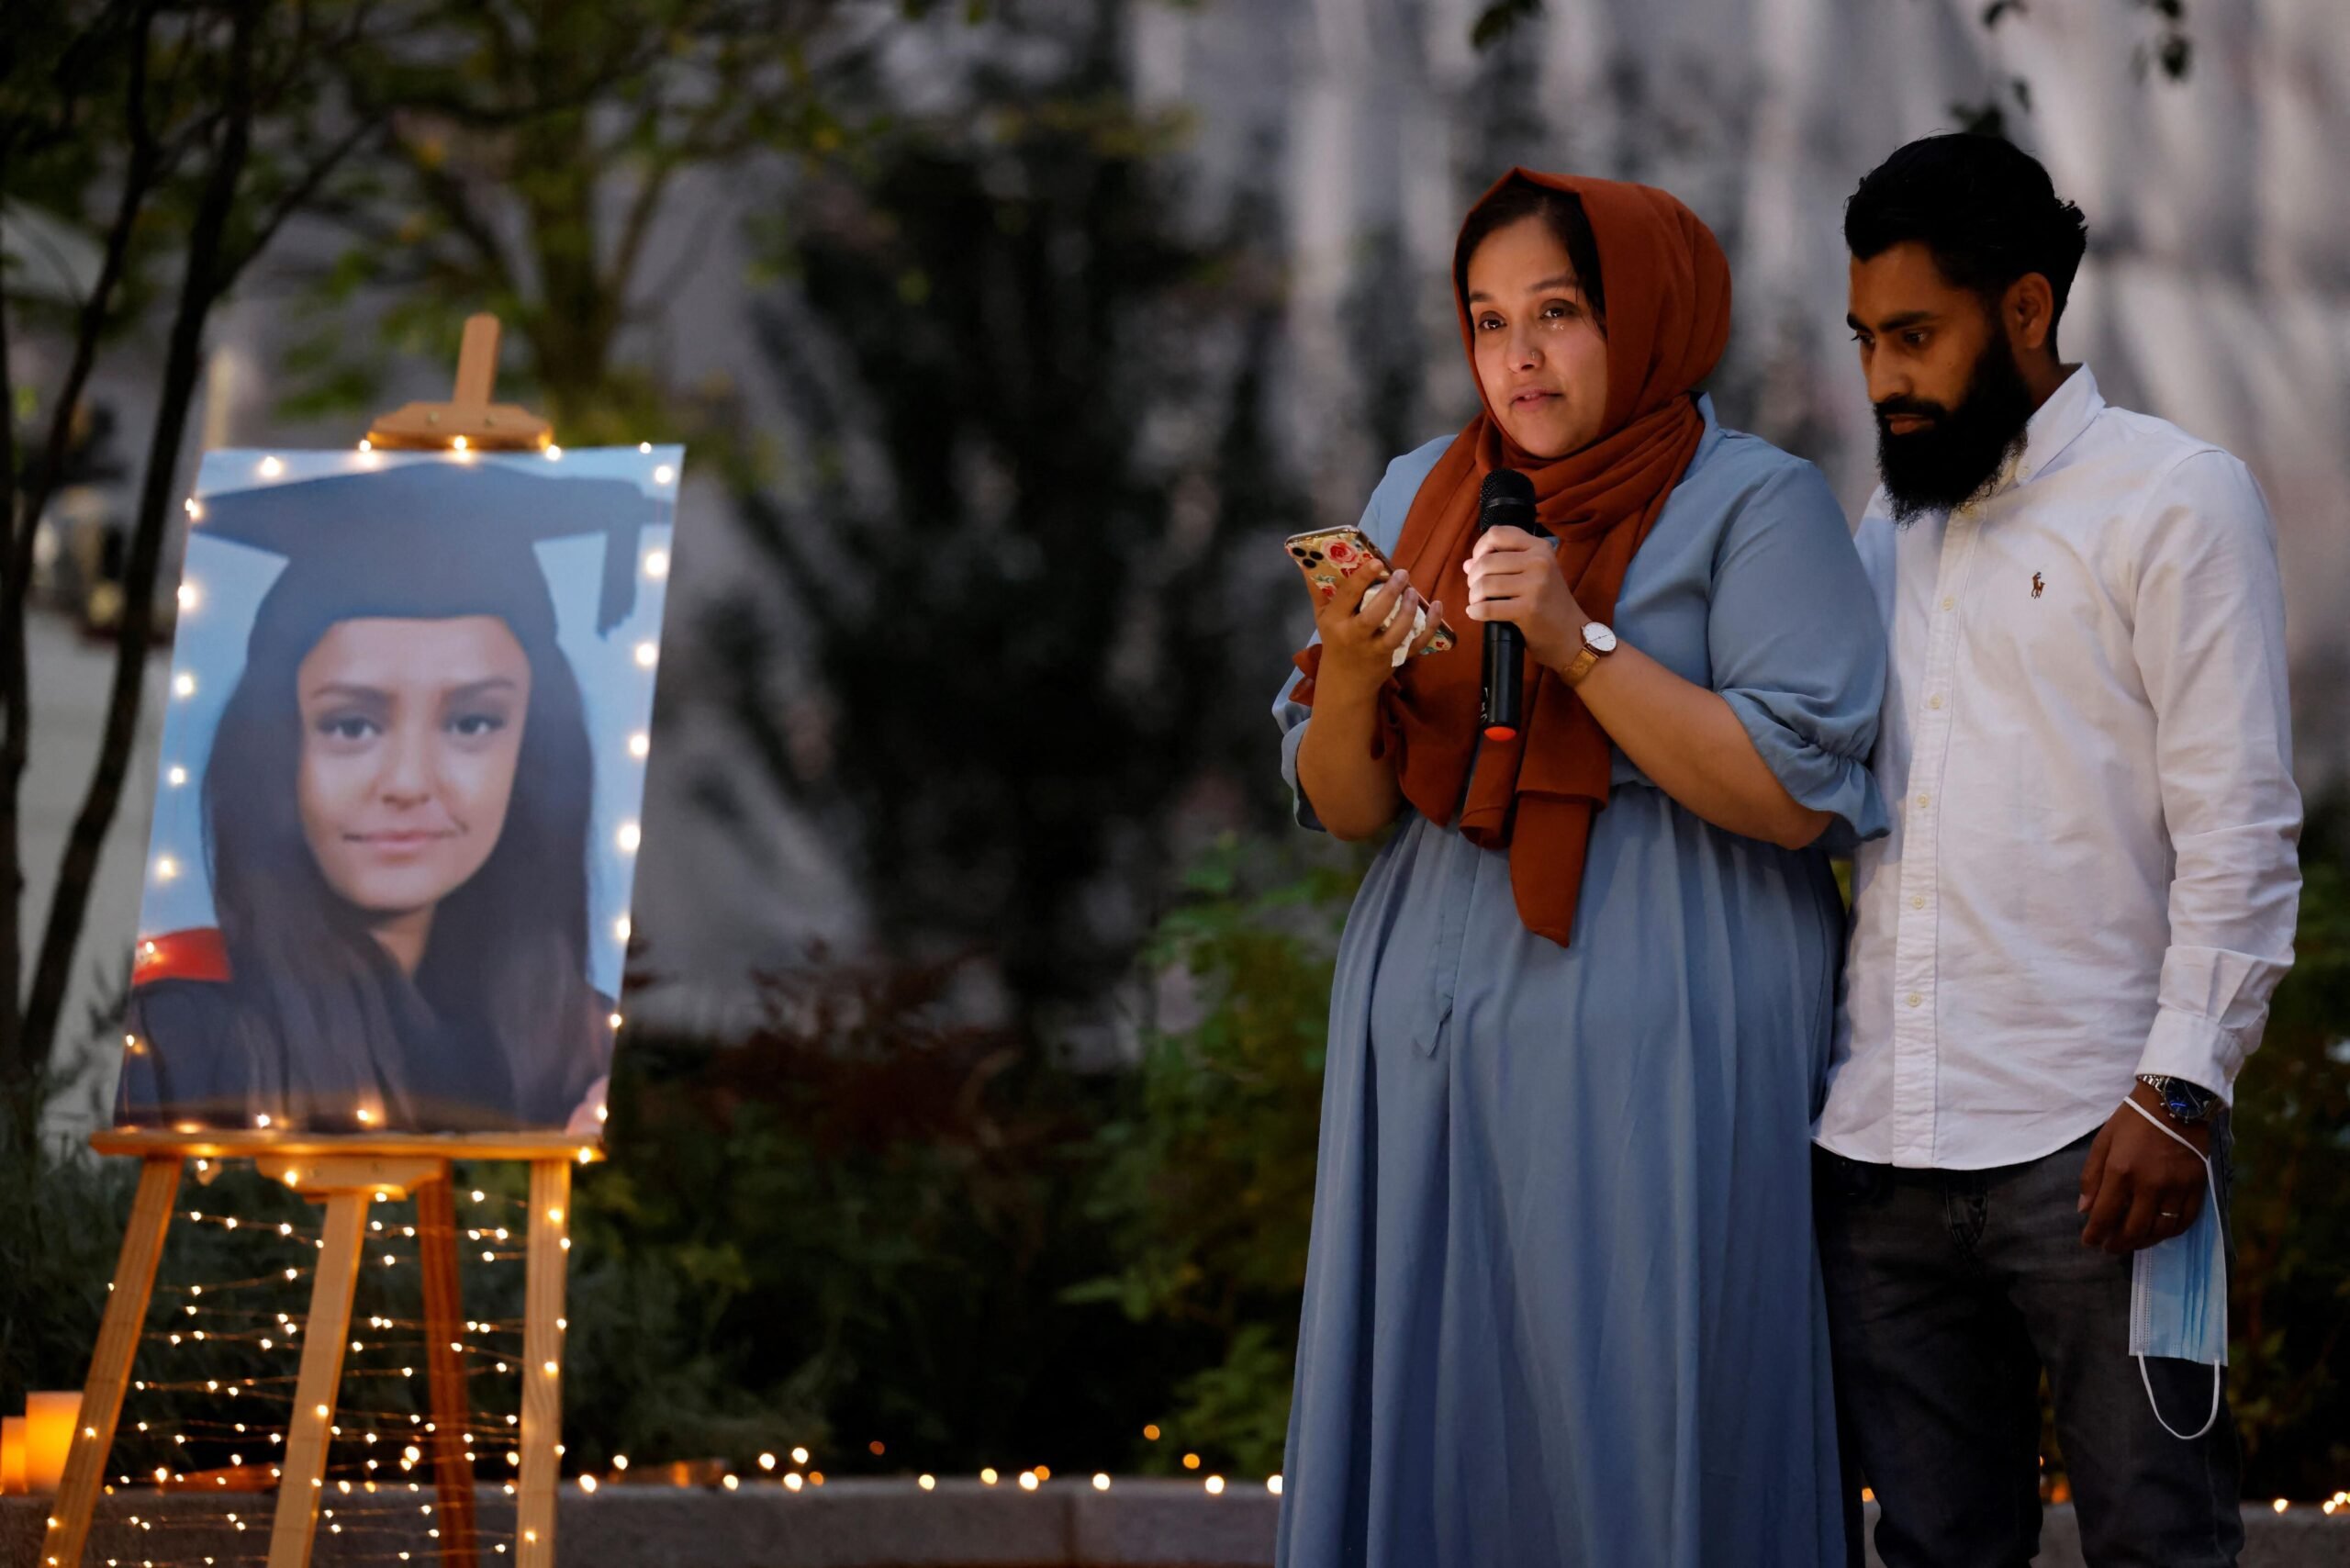 <i>Tolga Akmen/AFP/Getty Images</i><br/>Sabina Nessa's sister pays tribute to her during a candlelight vigil in Kidbrooke on September 24.